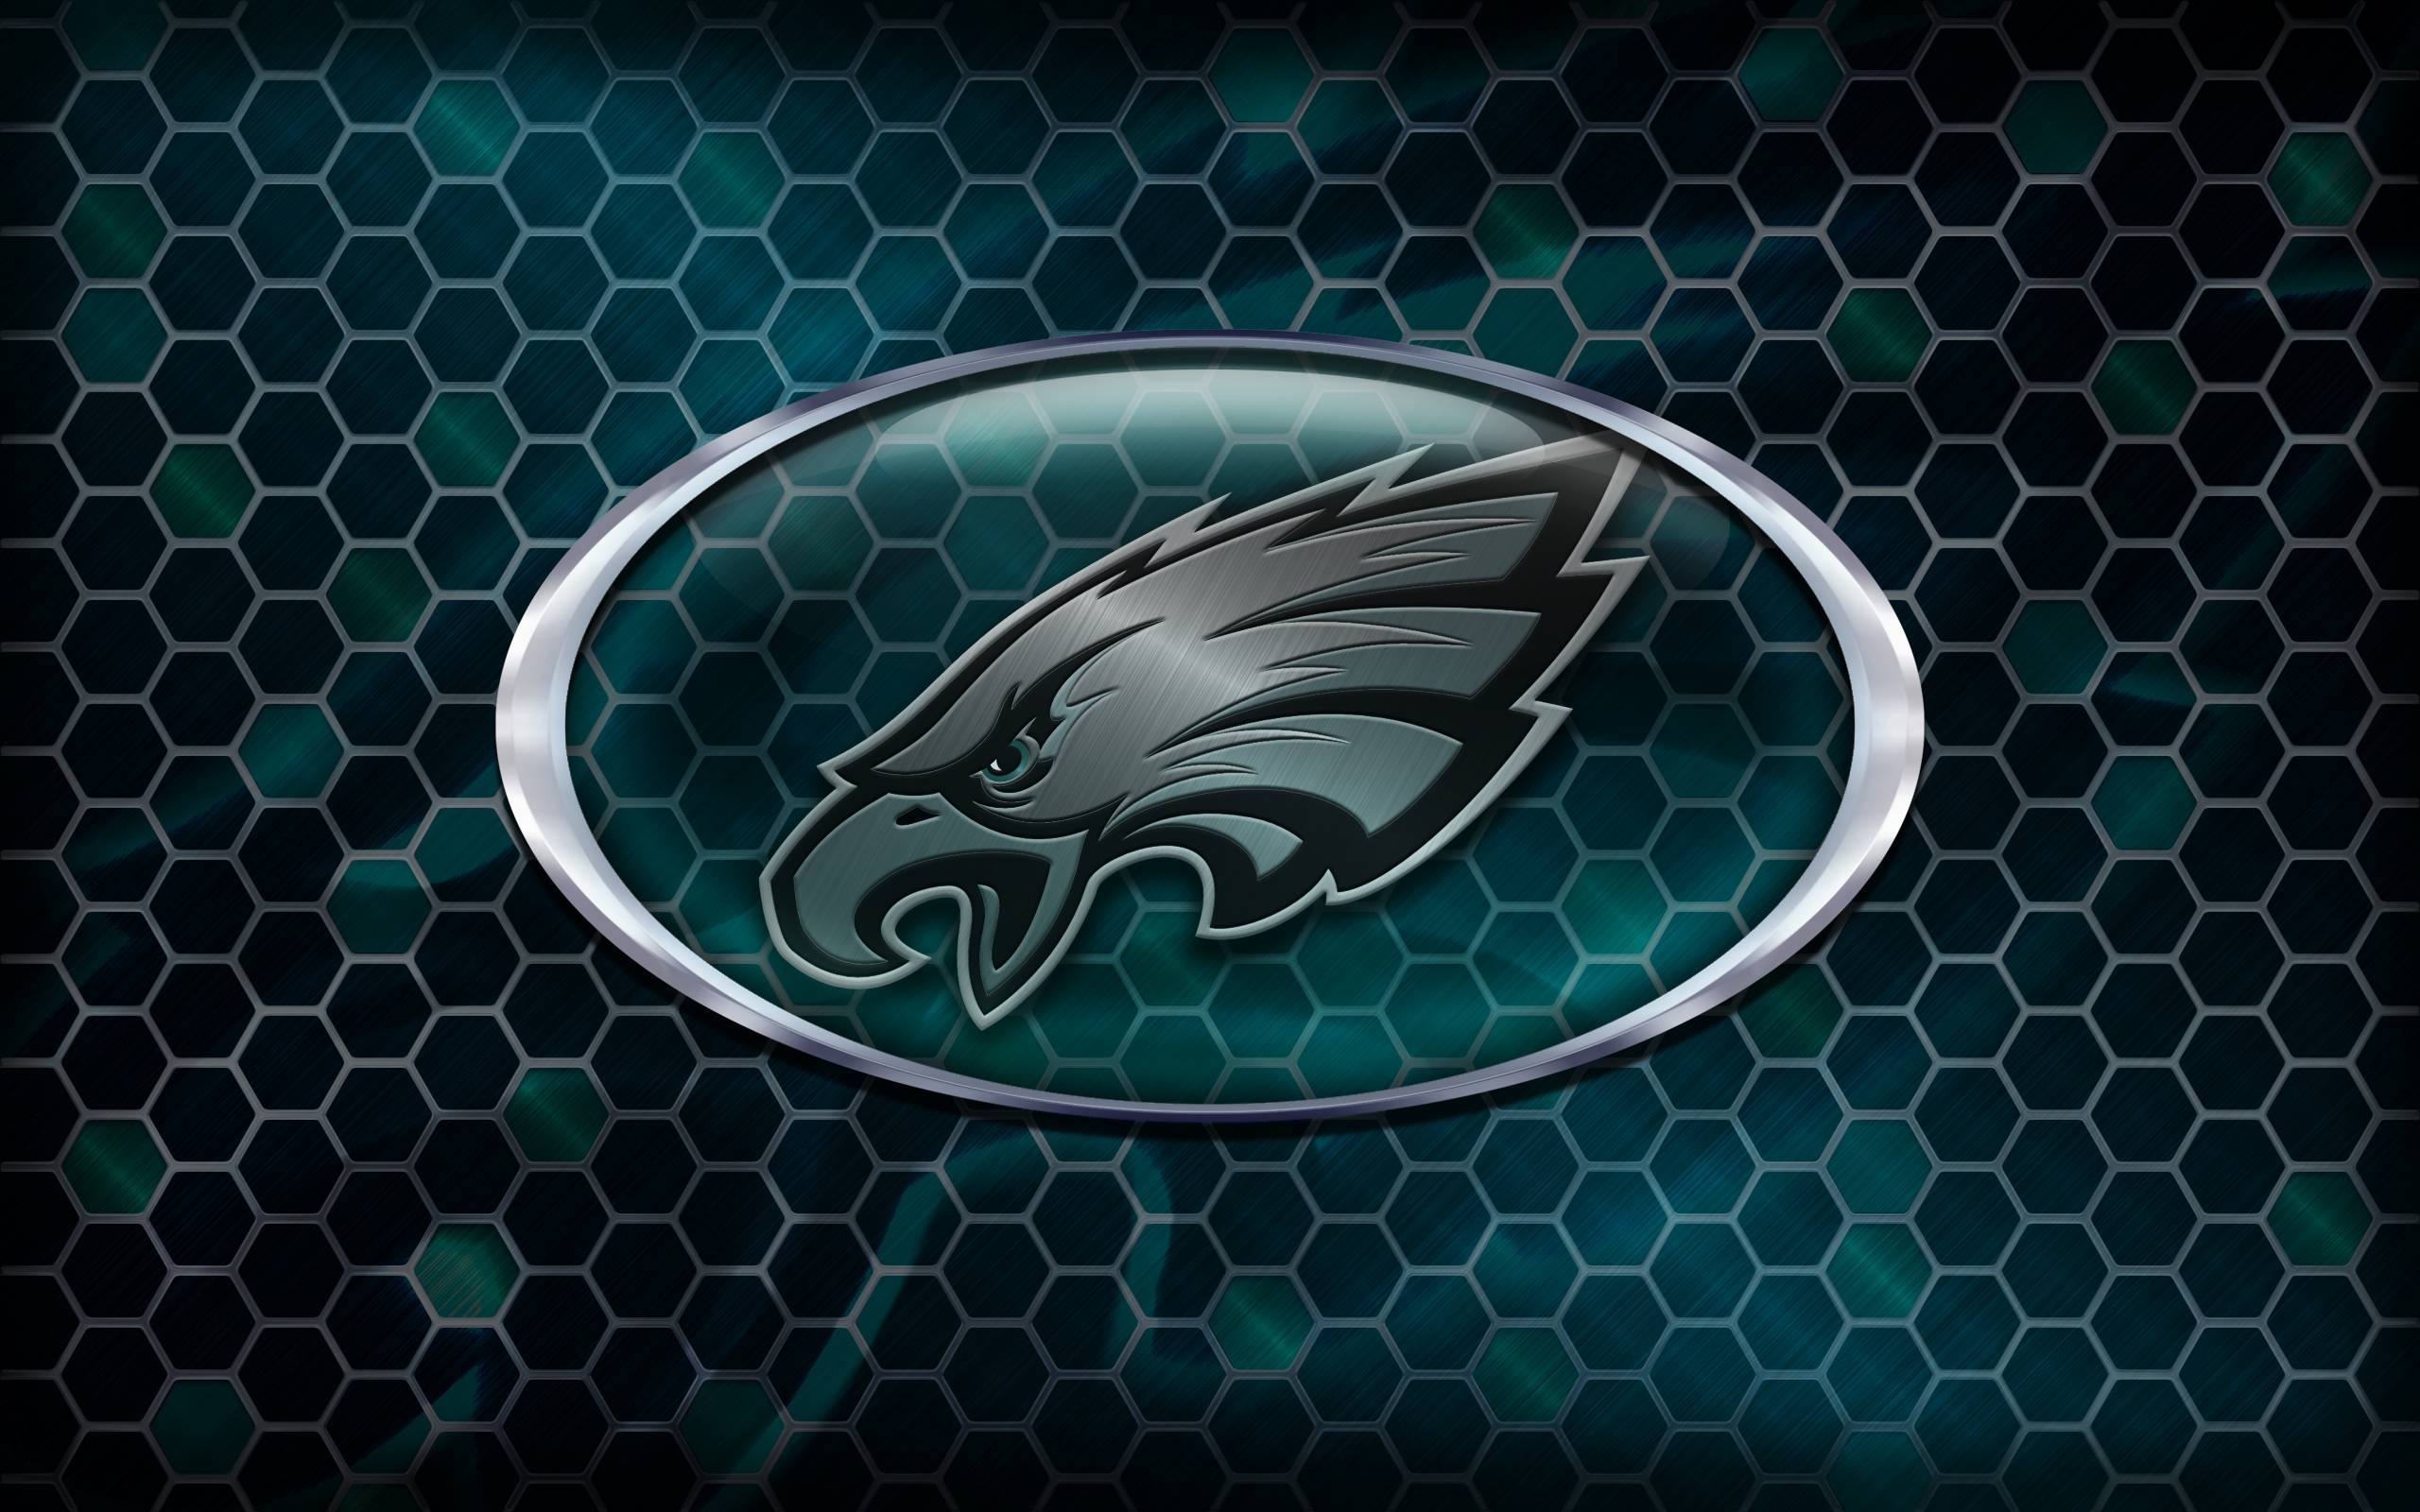 Philadelphia Eagles 2014 NFL Logo Wallpapers Wide or HD